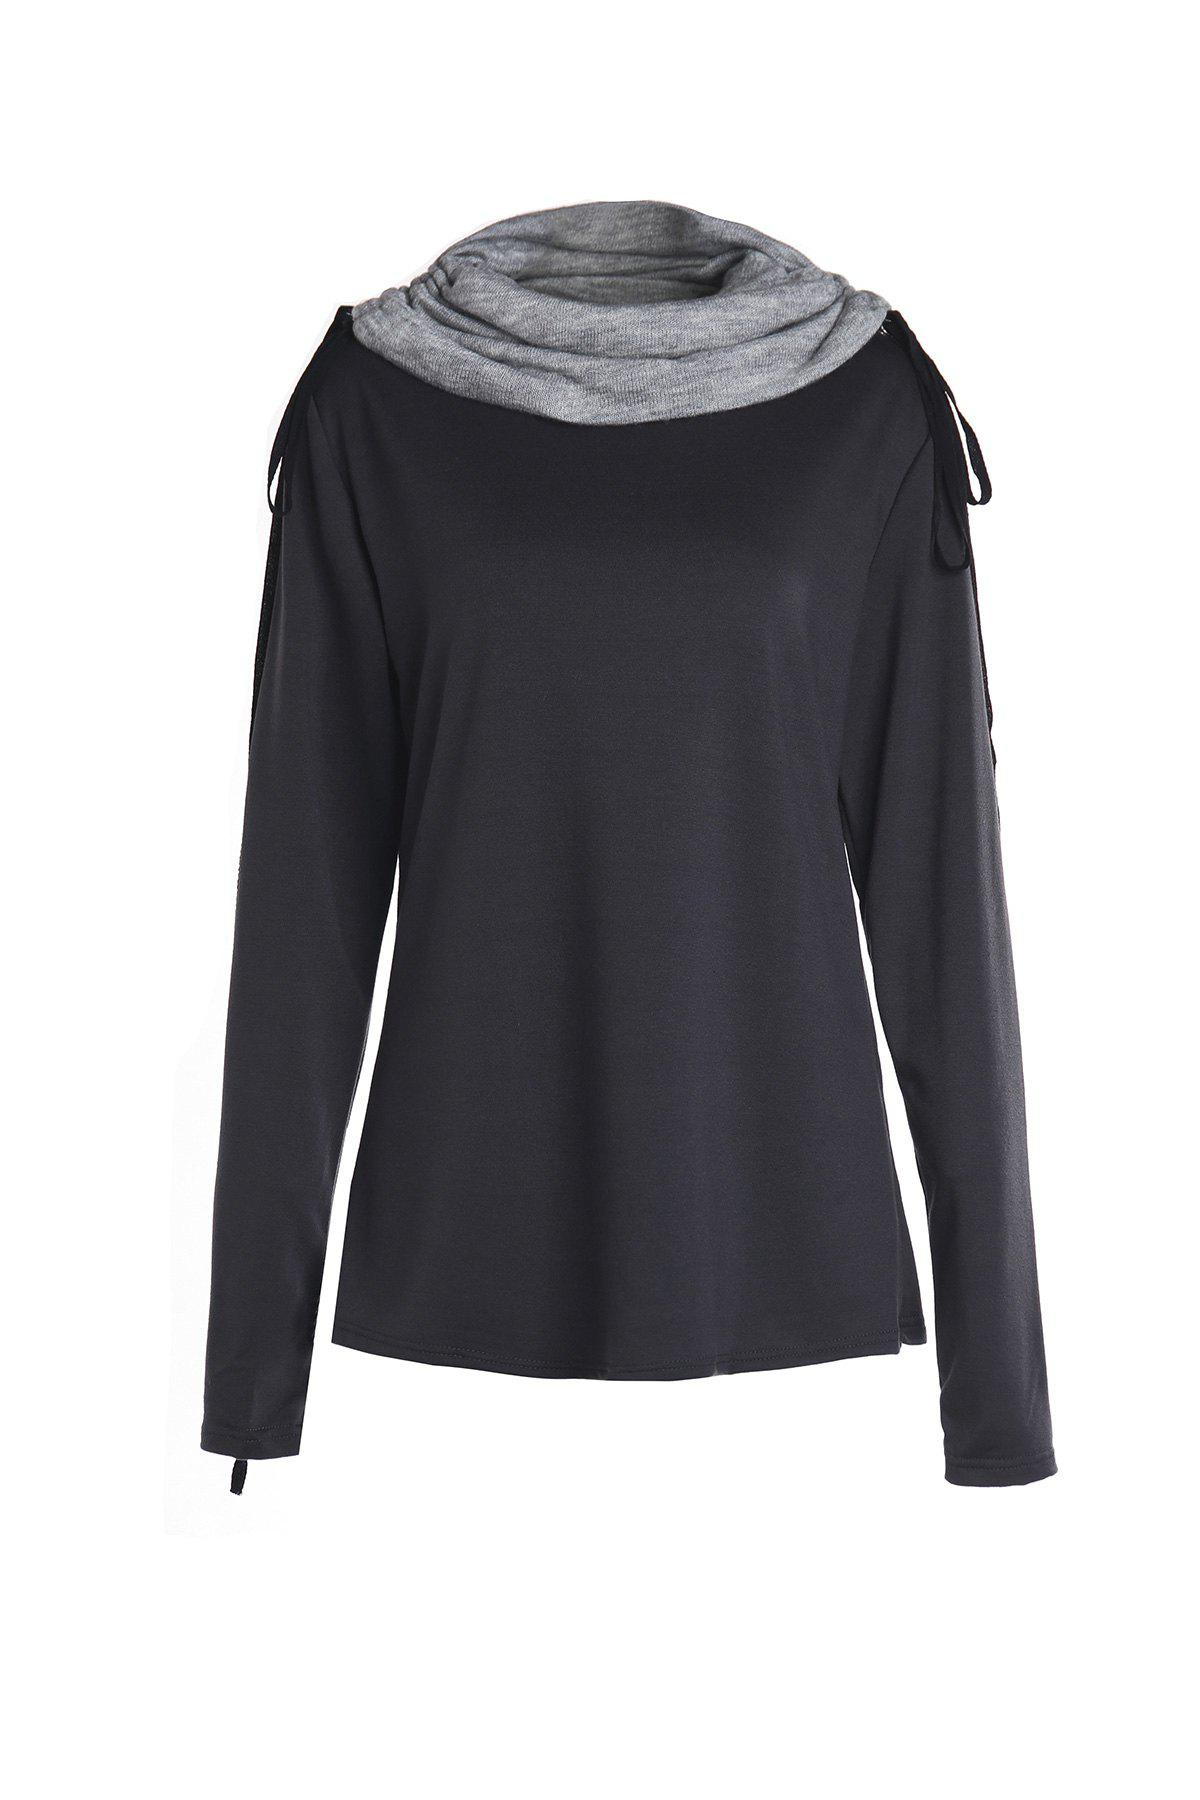 Chic Long Sleeve Turtle Neck Spliced Women's Sweatshirt - BLACK S